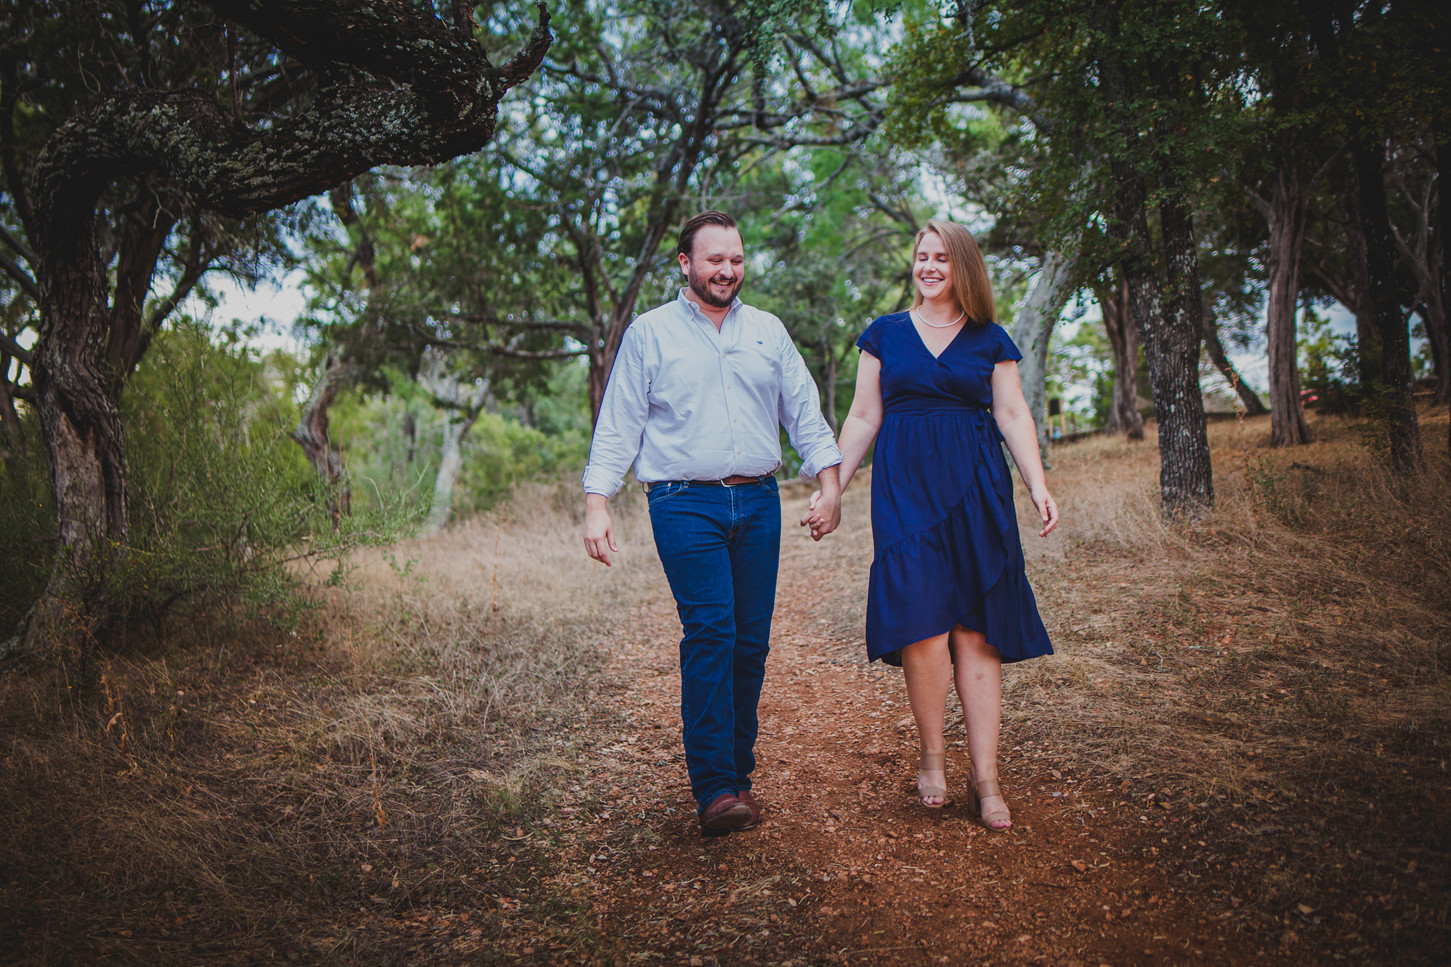 Carolyn & Cam Engagement 2019 - For Pers